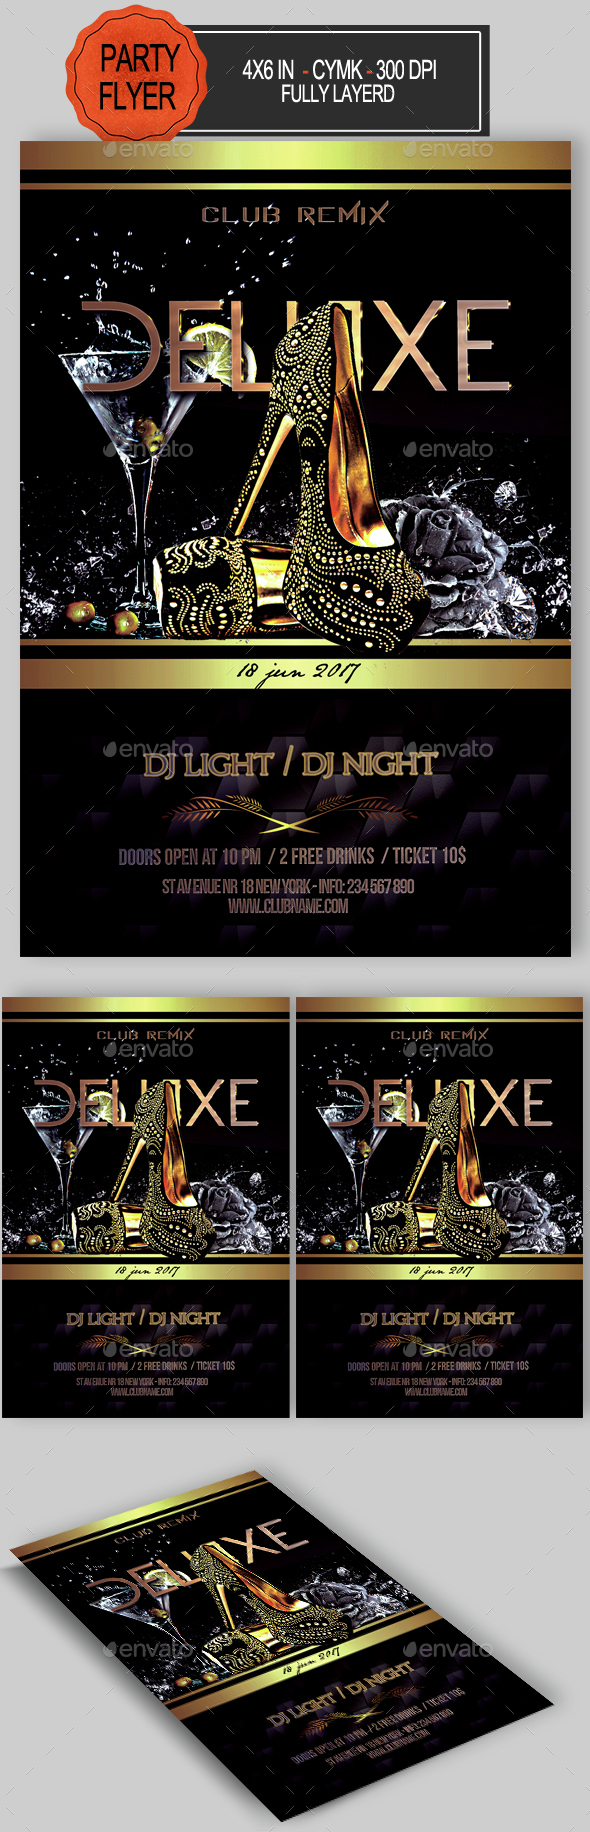 Deluxe Party Flyer - Clubs & Parties Events